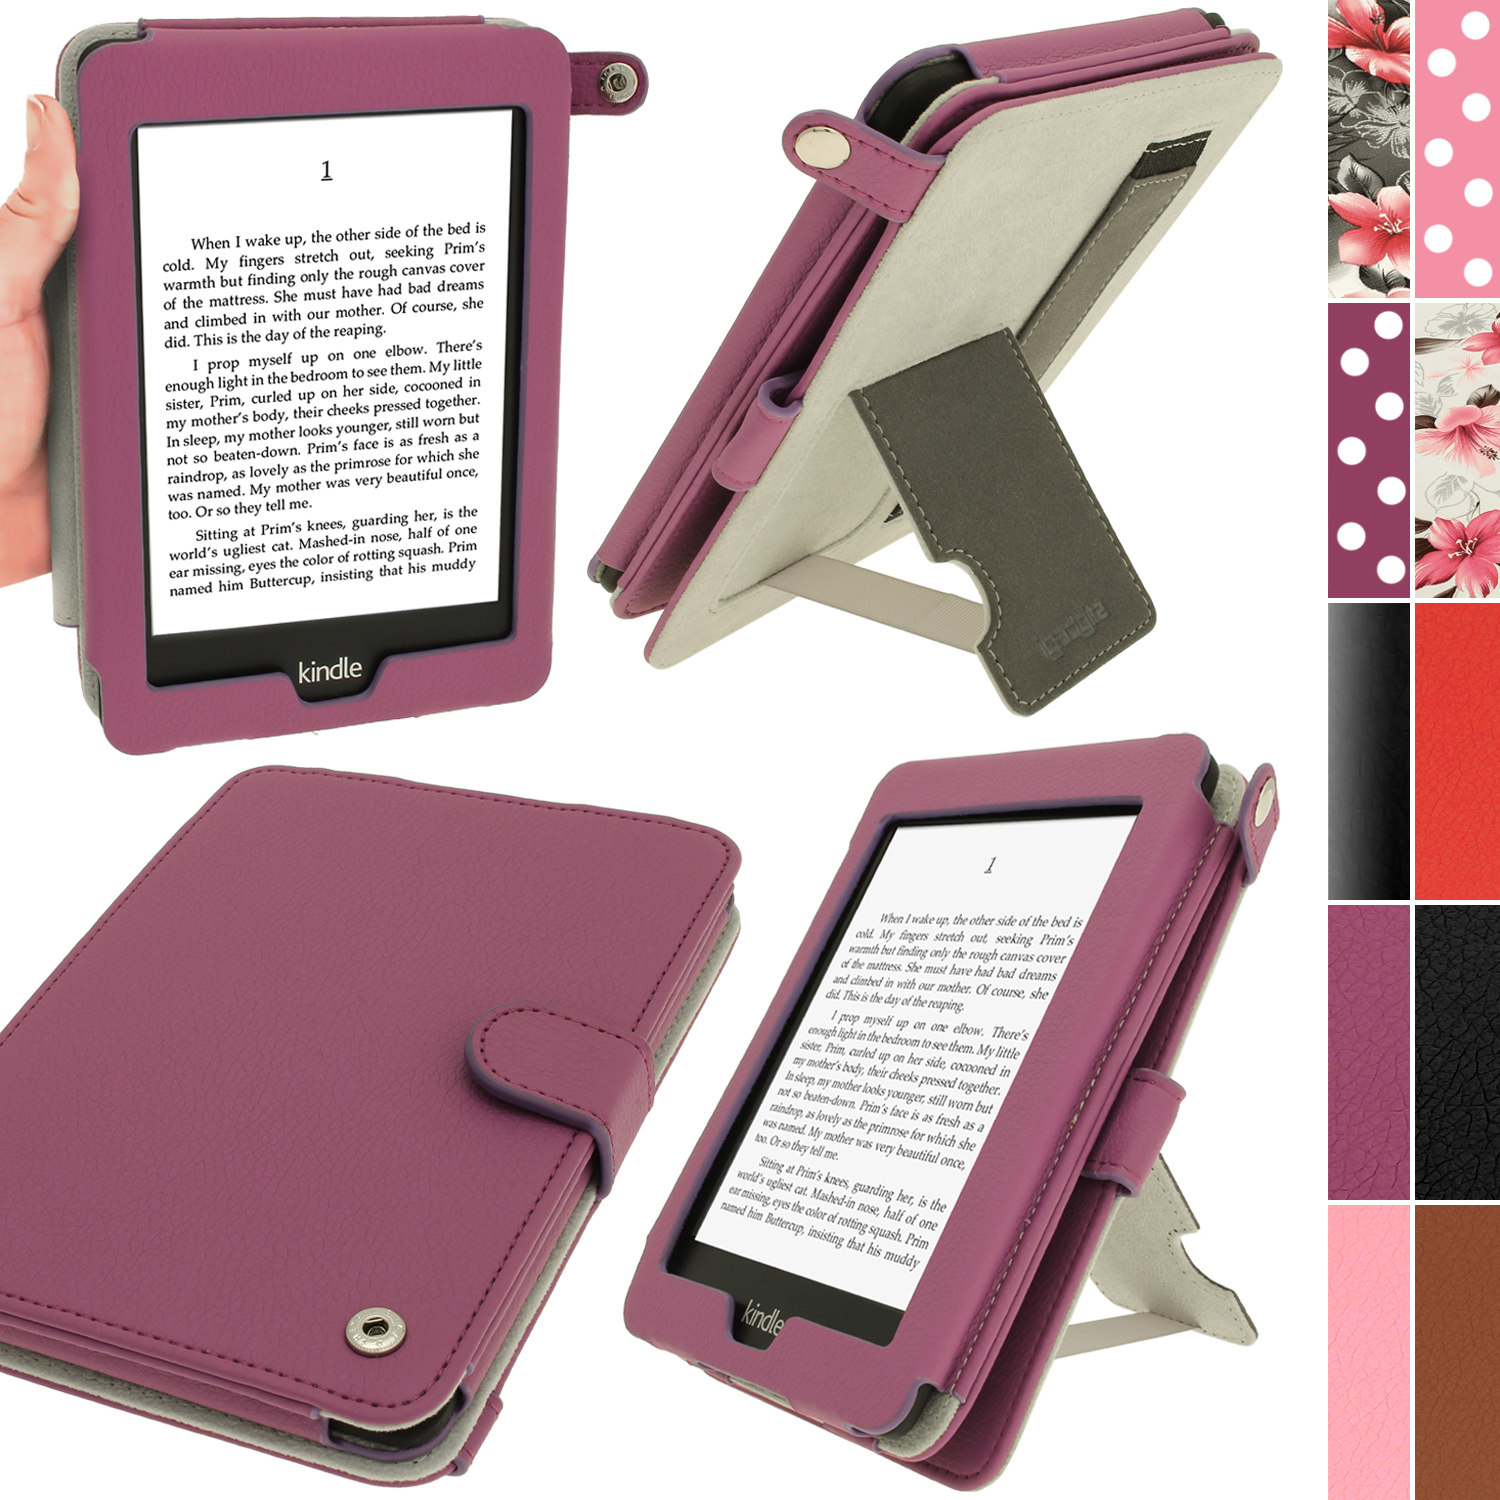 iGadgitz Purple PU 'Bi-View' Leather Case for Amazon Kindle Paperwhite 2015 2014 2013 2012 With Sleep/Wake & Hand Strap